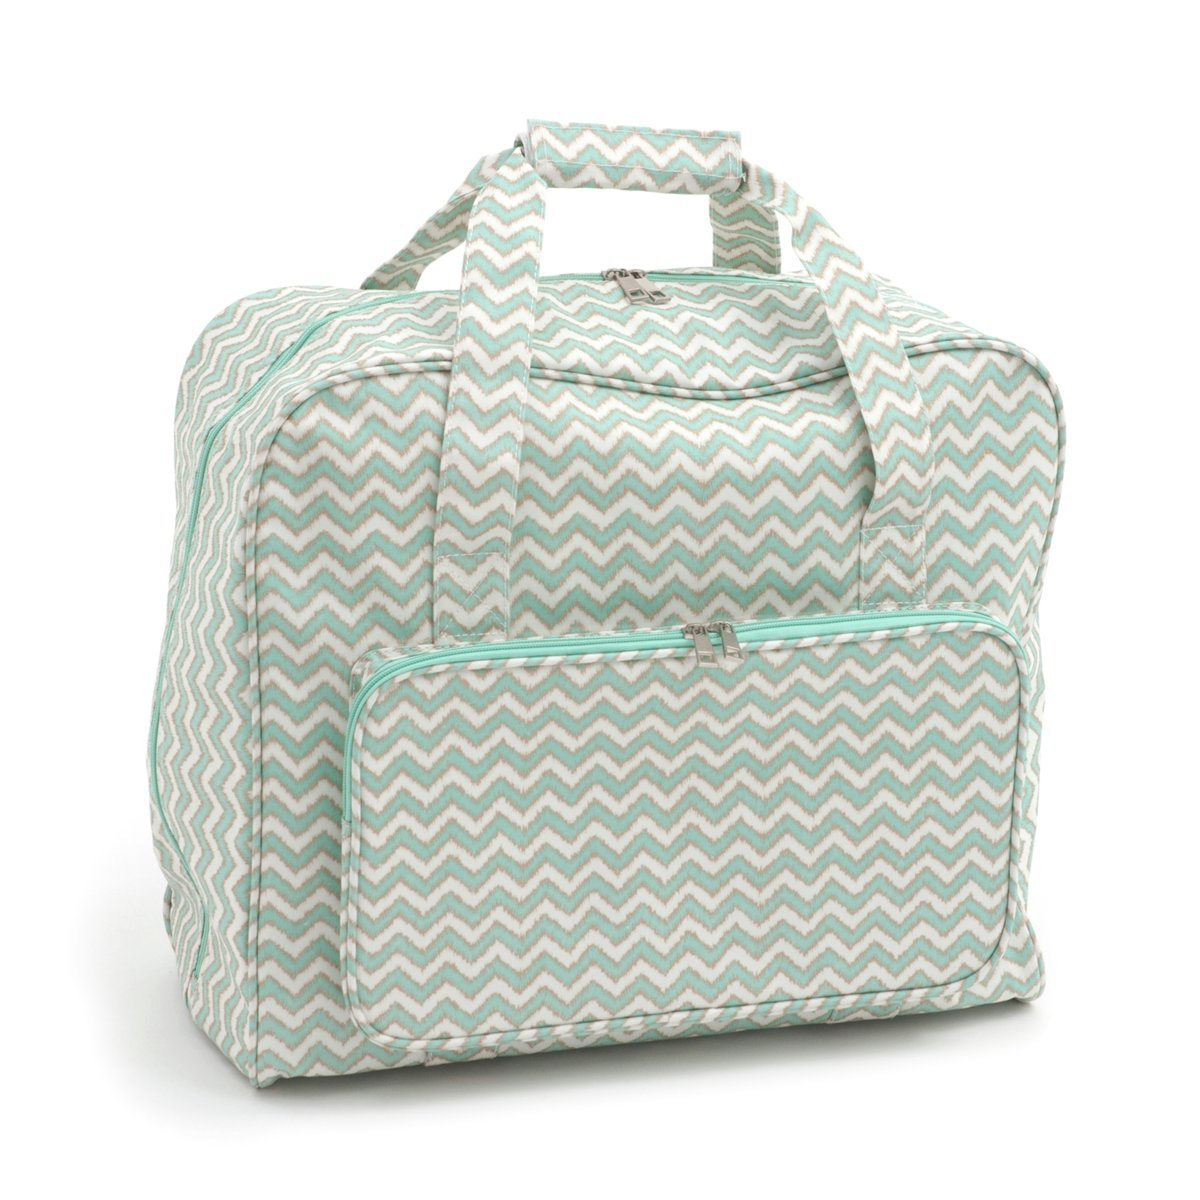 Hobbygift Groves Exclusive: Sewing Machine Bag: Matt PVC: Scribble Chevron, Cotton, Assorted, 20 x 43 x 37 cm MR4660\269